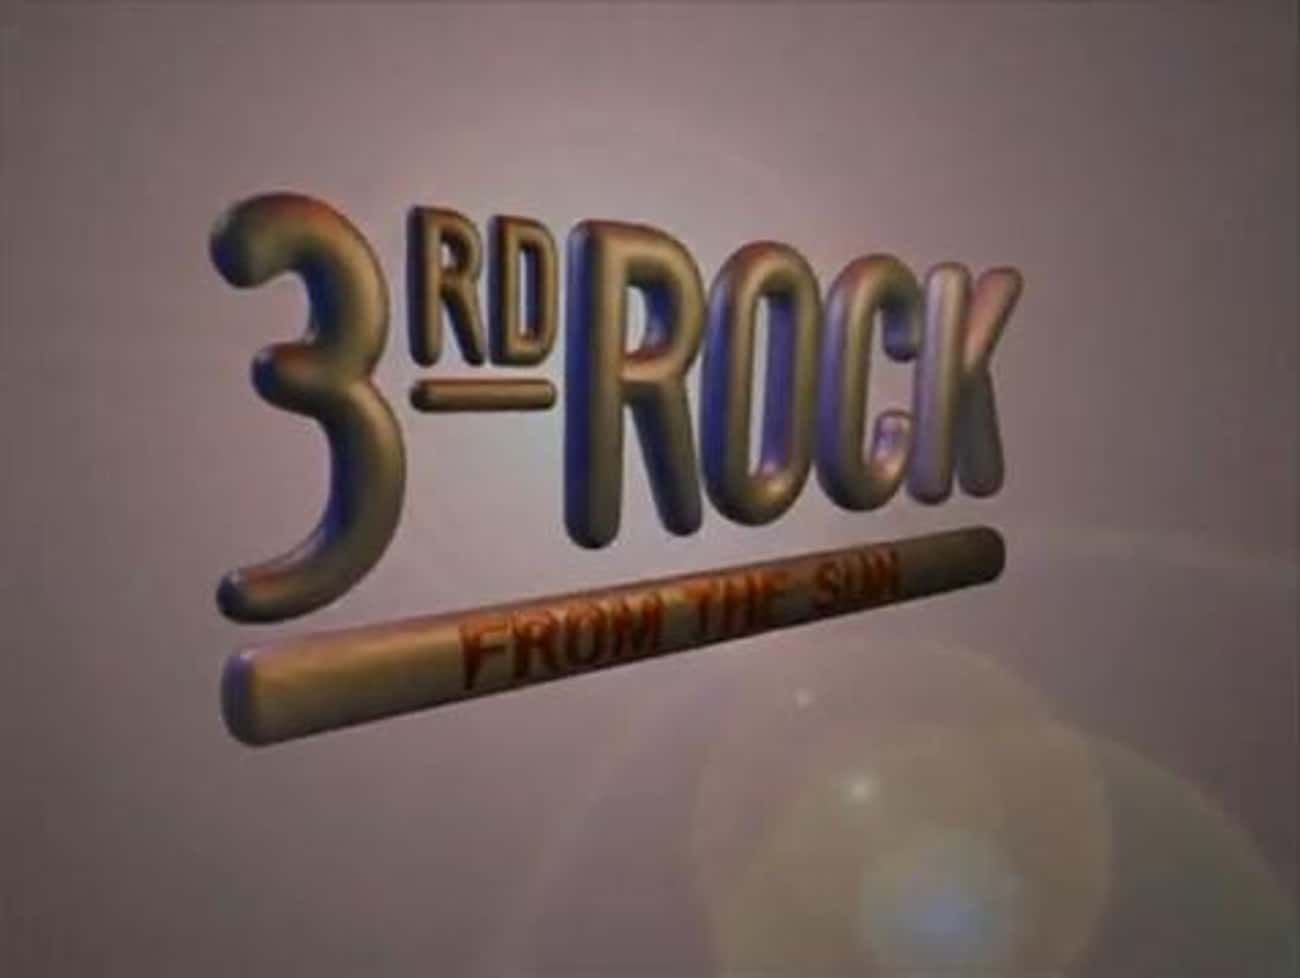 3rd Rock from the Sun is listed (or ranked) 2 on the list What To Watch If You Love 'Frasier'